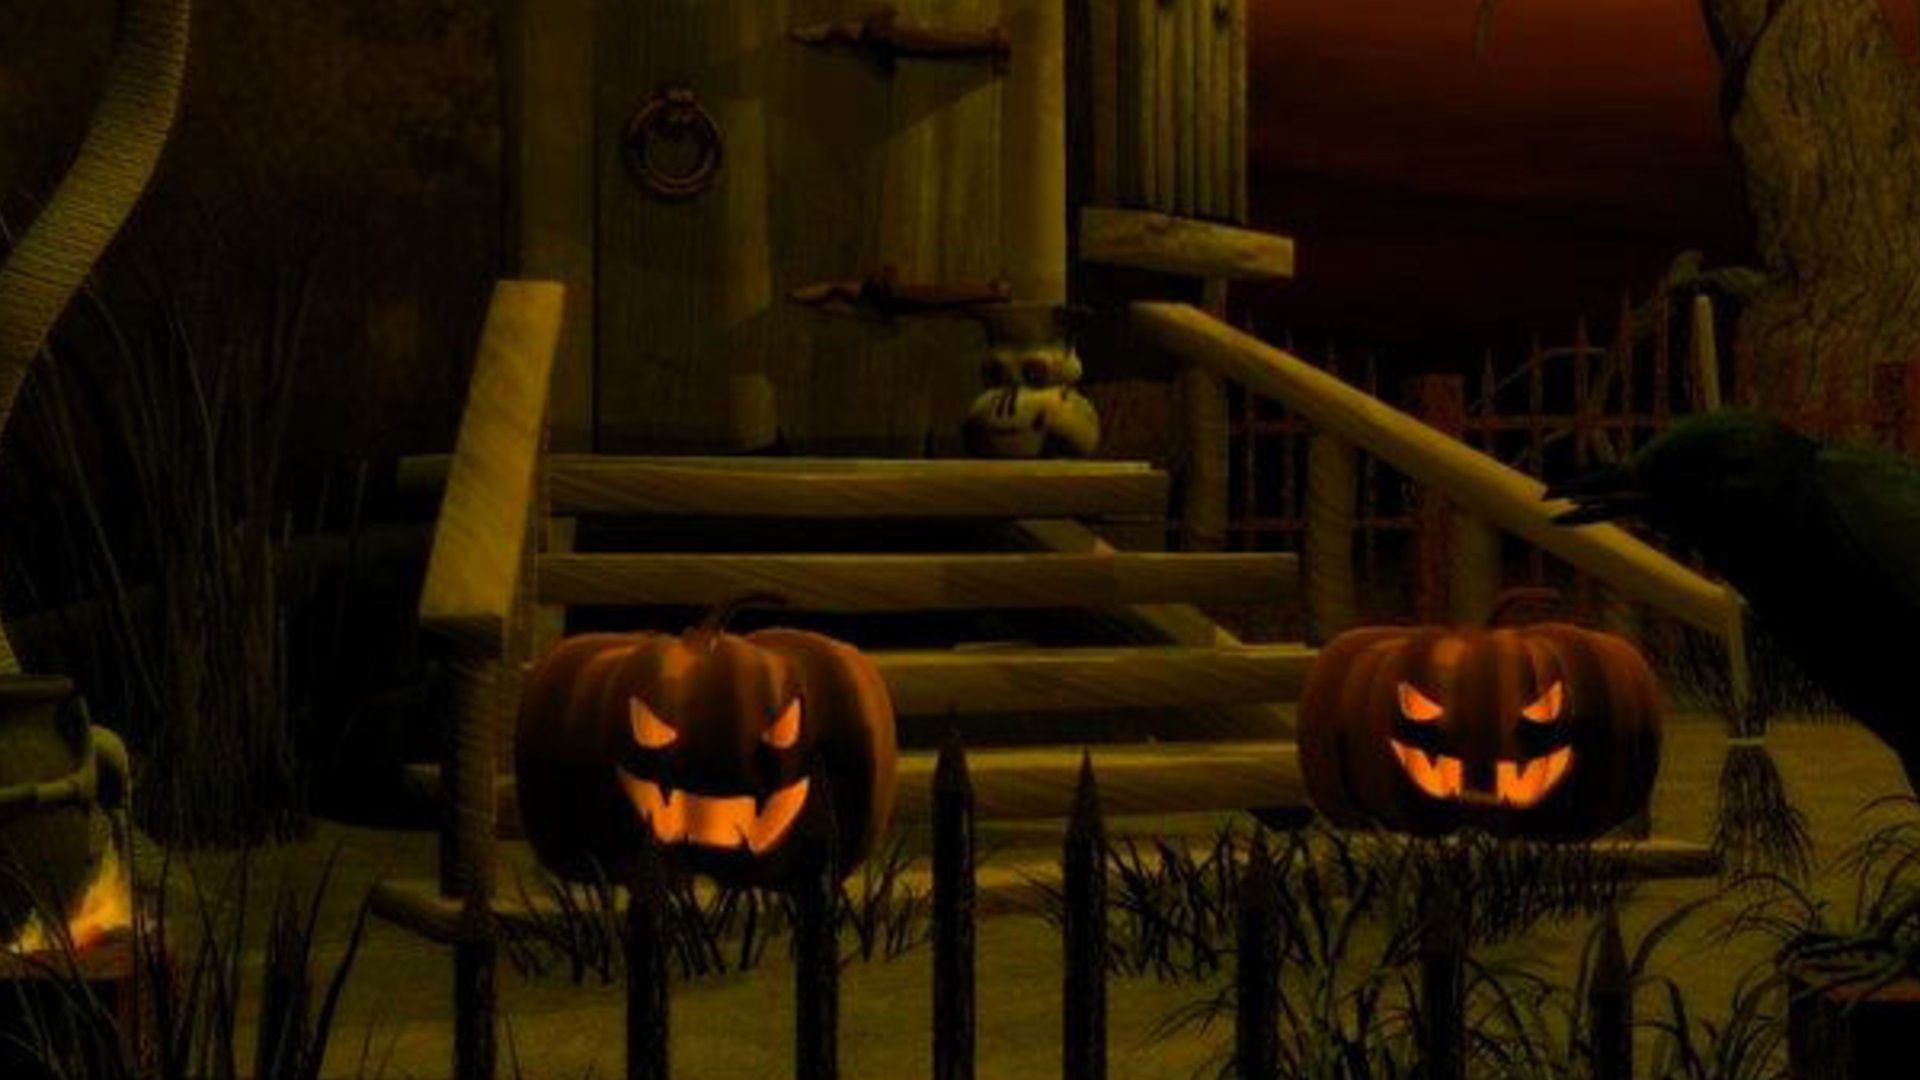 Halloween Halloween Wallpaper Halloween Desktop Wallpaper Free Halloween Wallpaper